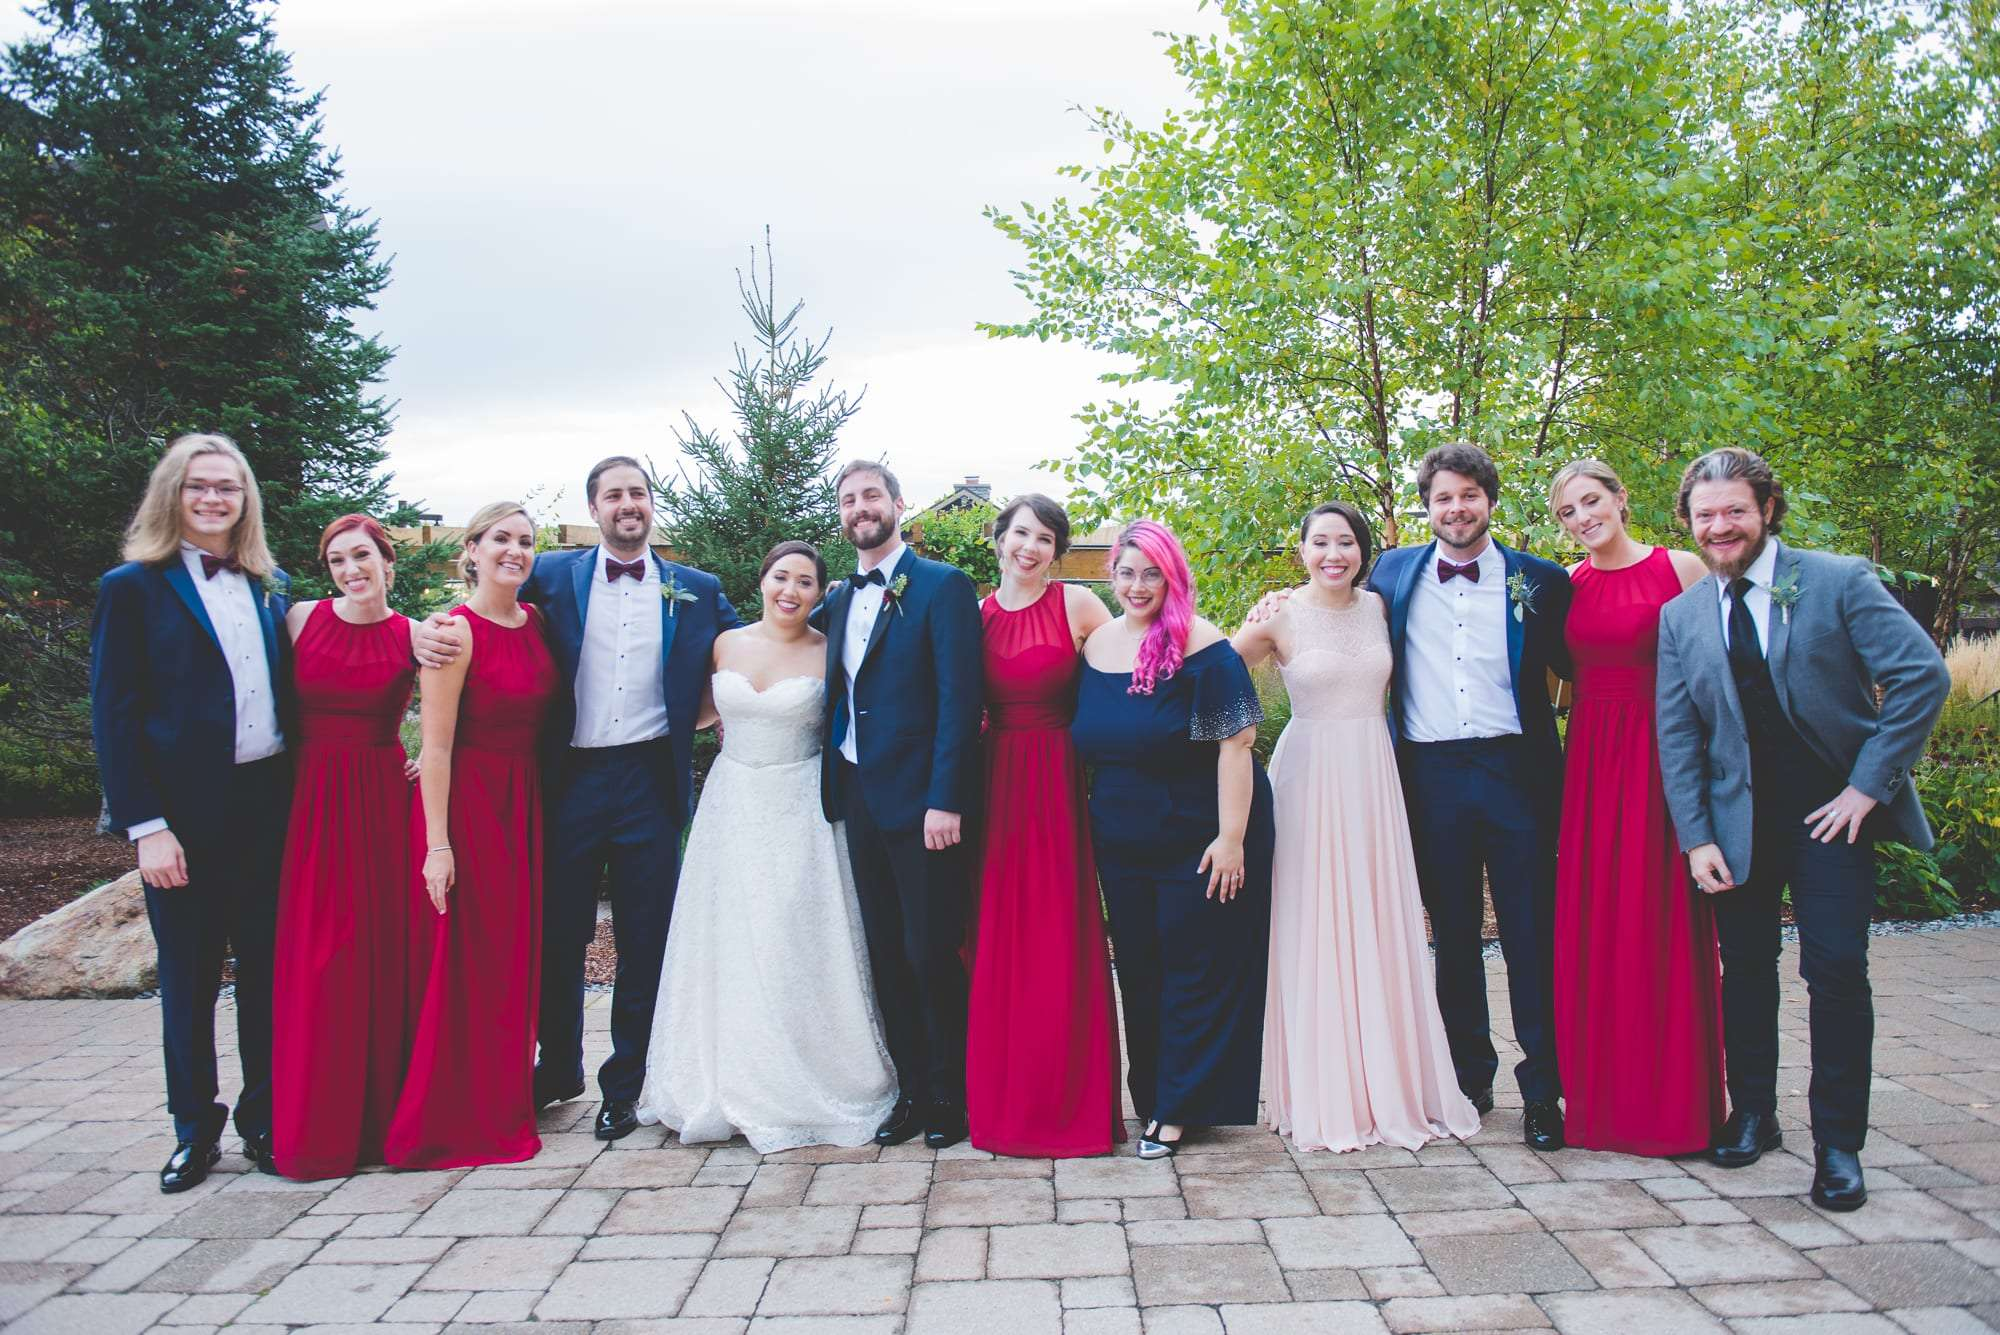 Bridal party at The Lodge at Spruce Peak Wedding VT